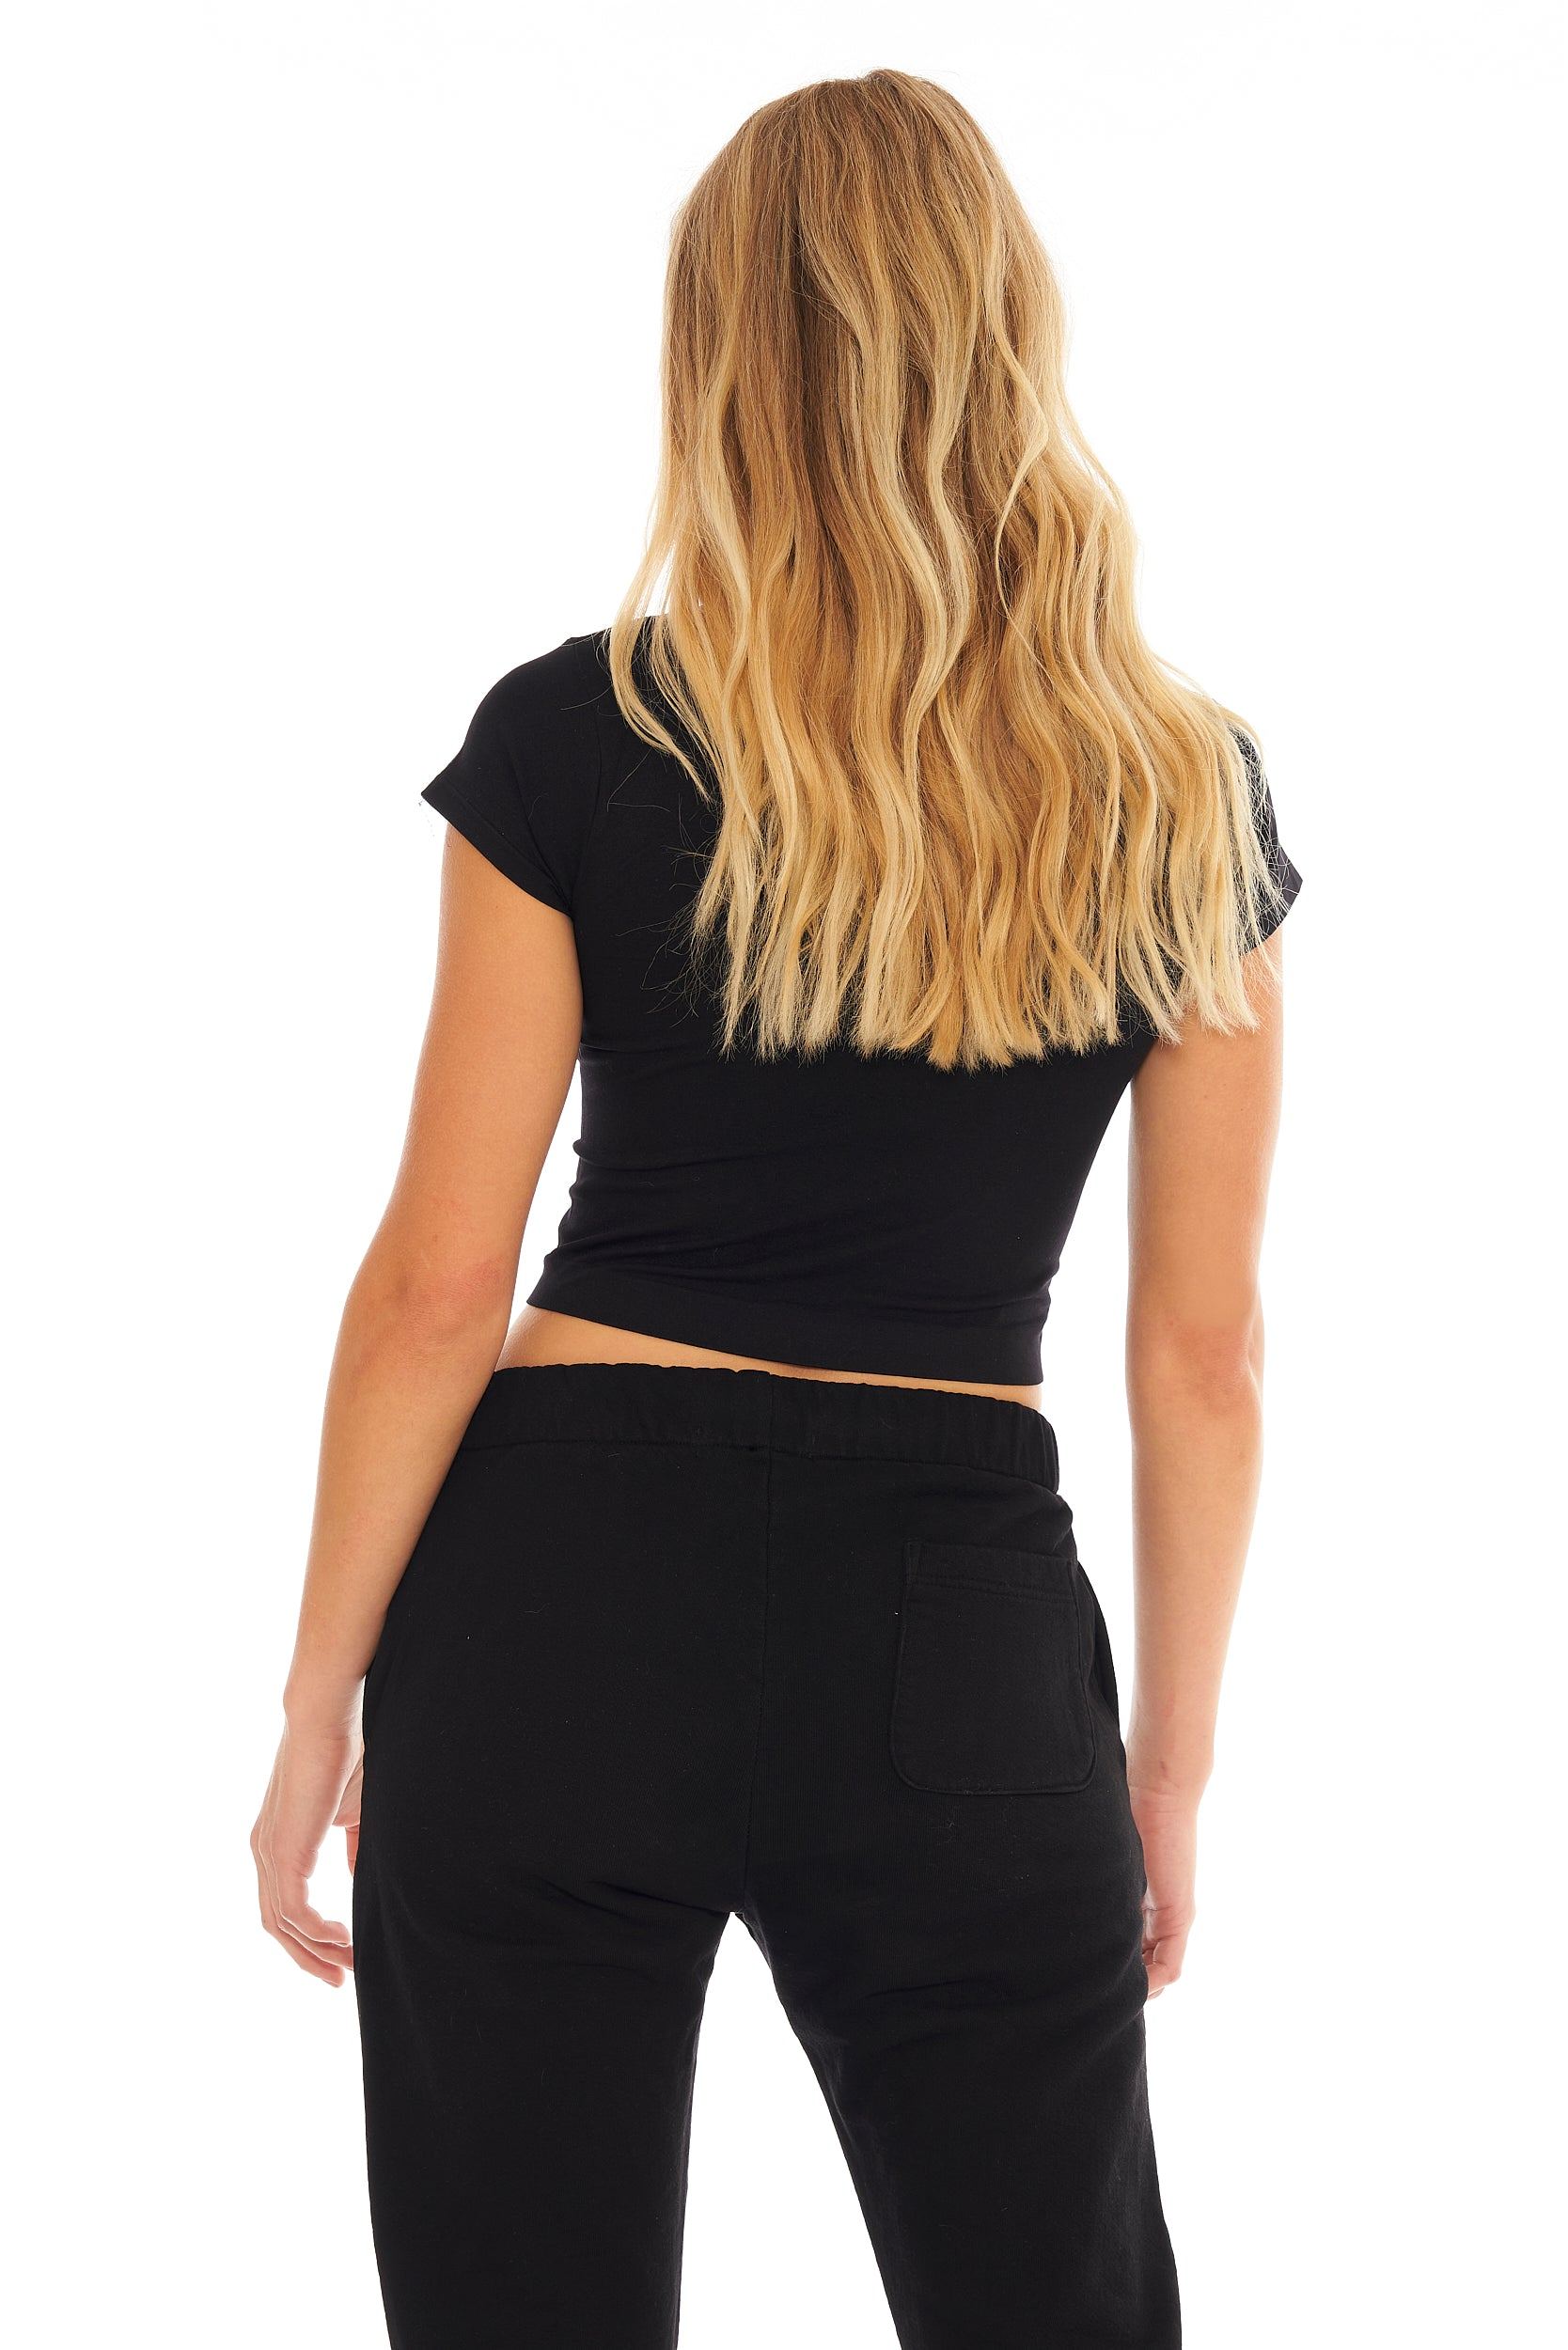 Cap Sleeve Crop Tee- Black